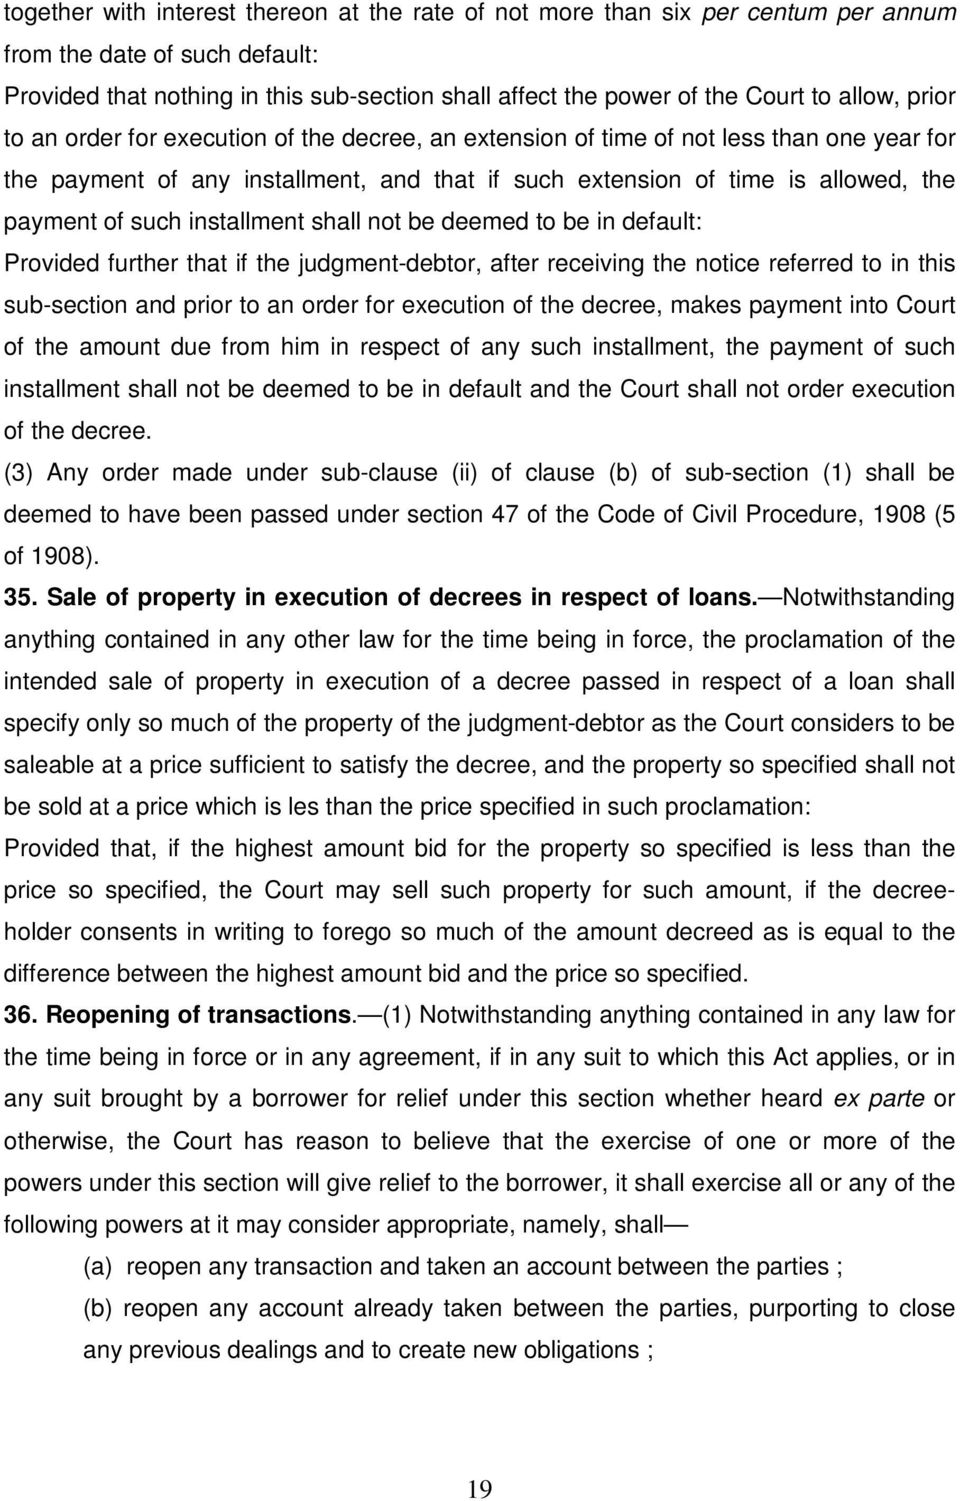 such installment shall not be deemed to be in default: Provided further that if the judgment-debtor, after receiving the notice referred to in this sub-section and prior to an order for execution of